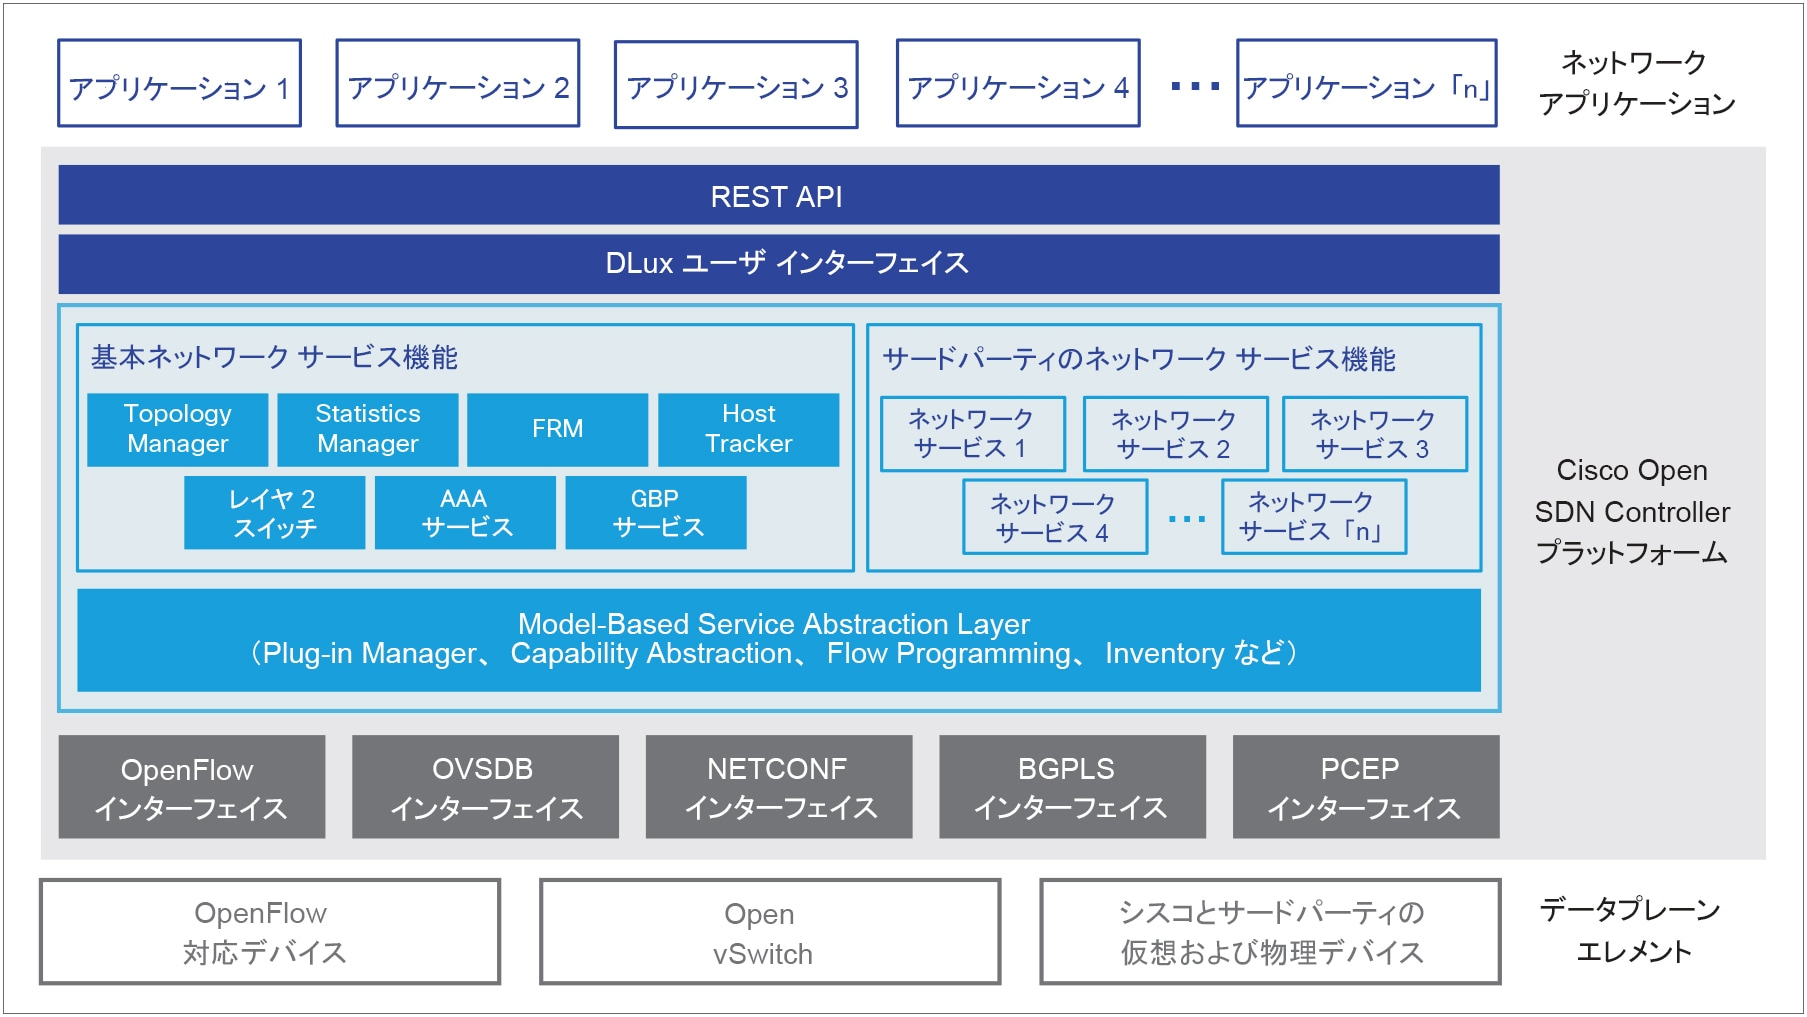 図 1 Cisco Open SDN Controller 1.2